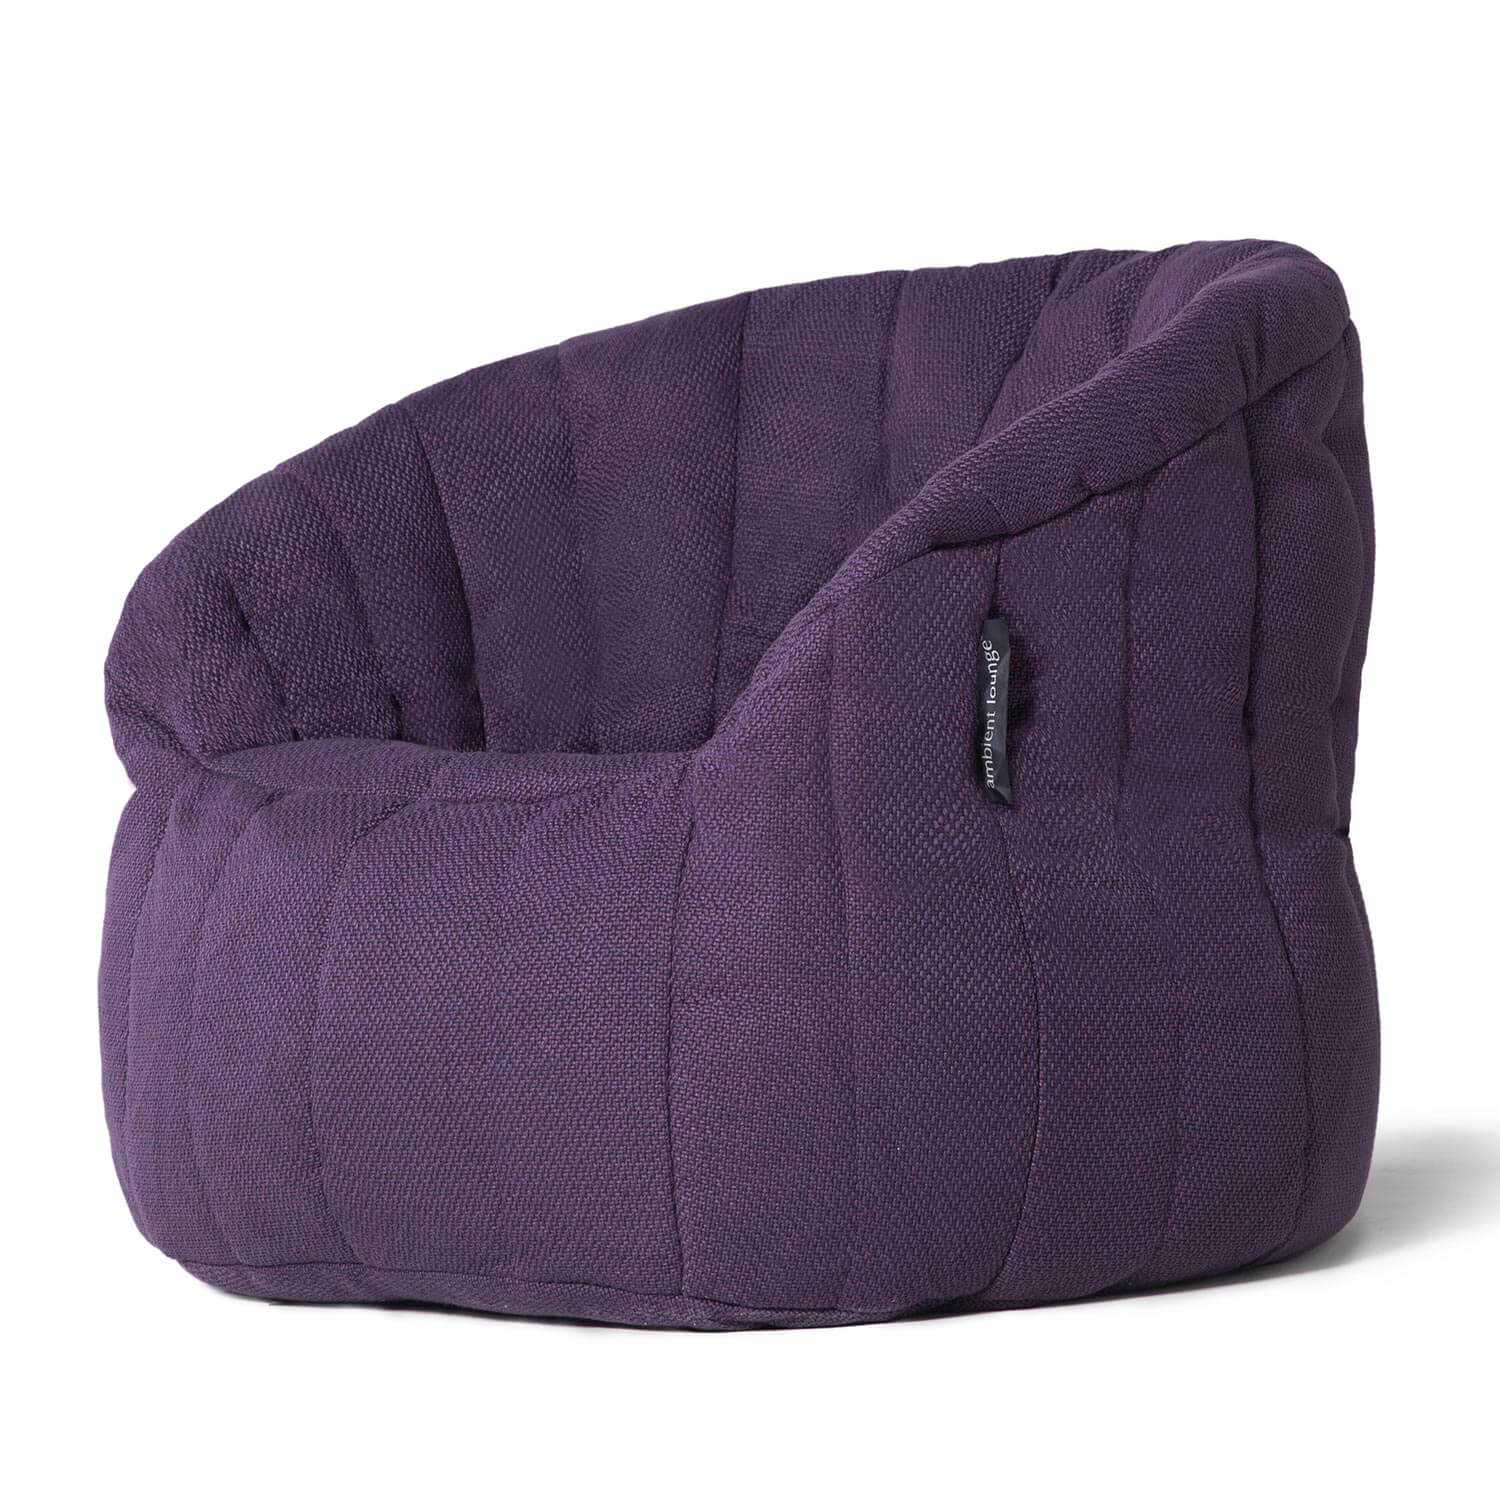 Interior Bean Bags Butterfly Sofa Aubergine Dream